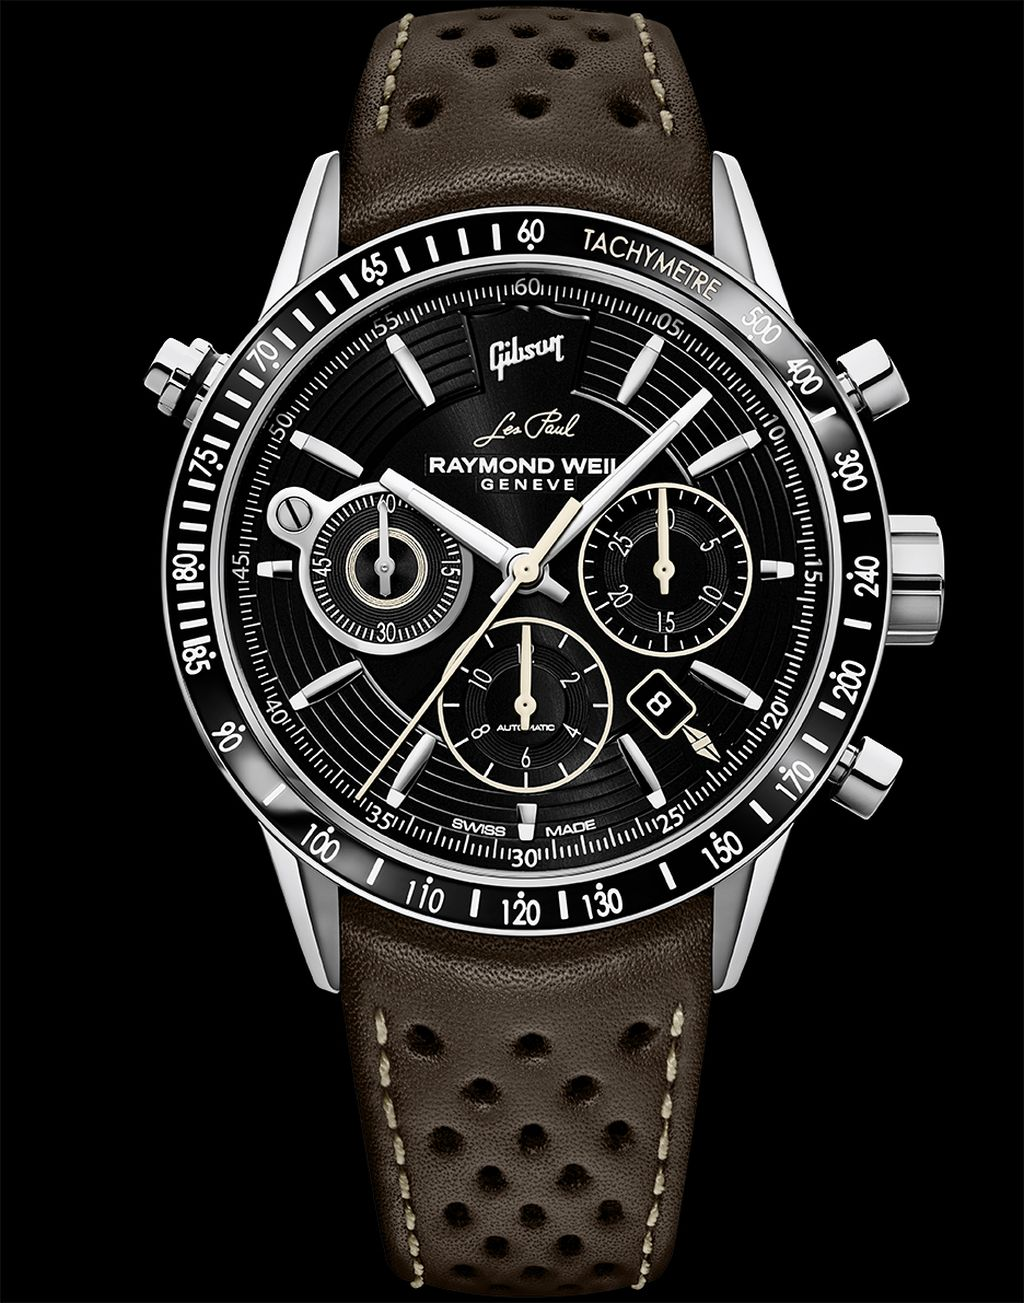 neue uhr raymond weil freelancer chronograph gibson les. Black Bedroom Furniture Sets. Home Design Ideas